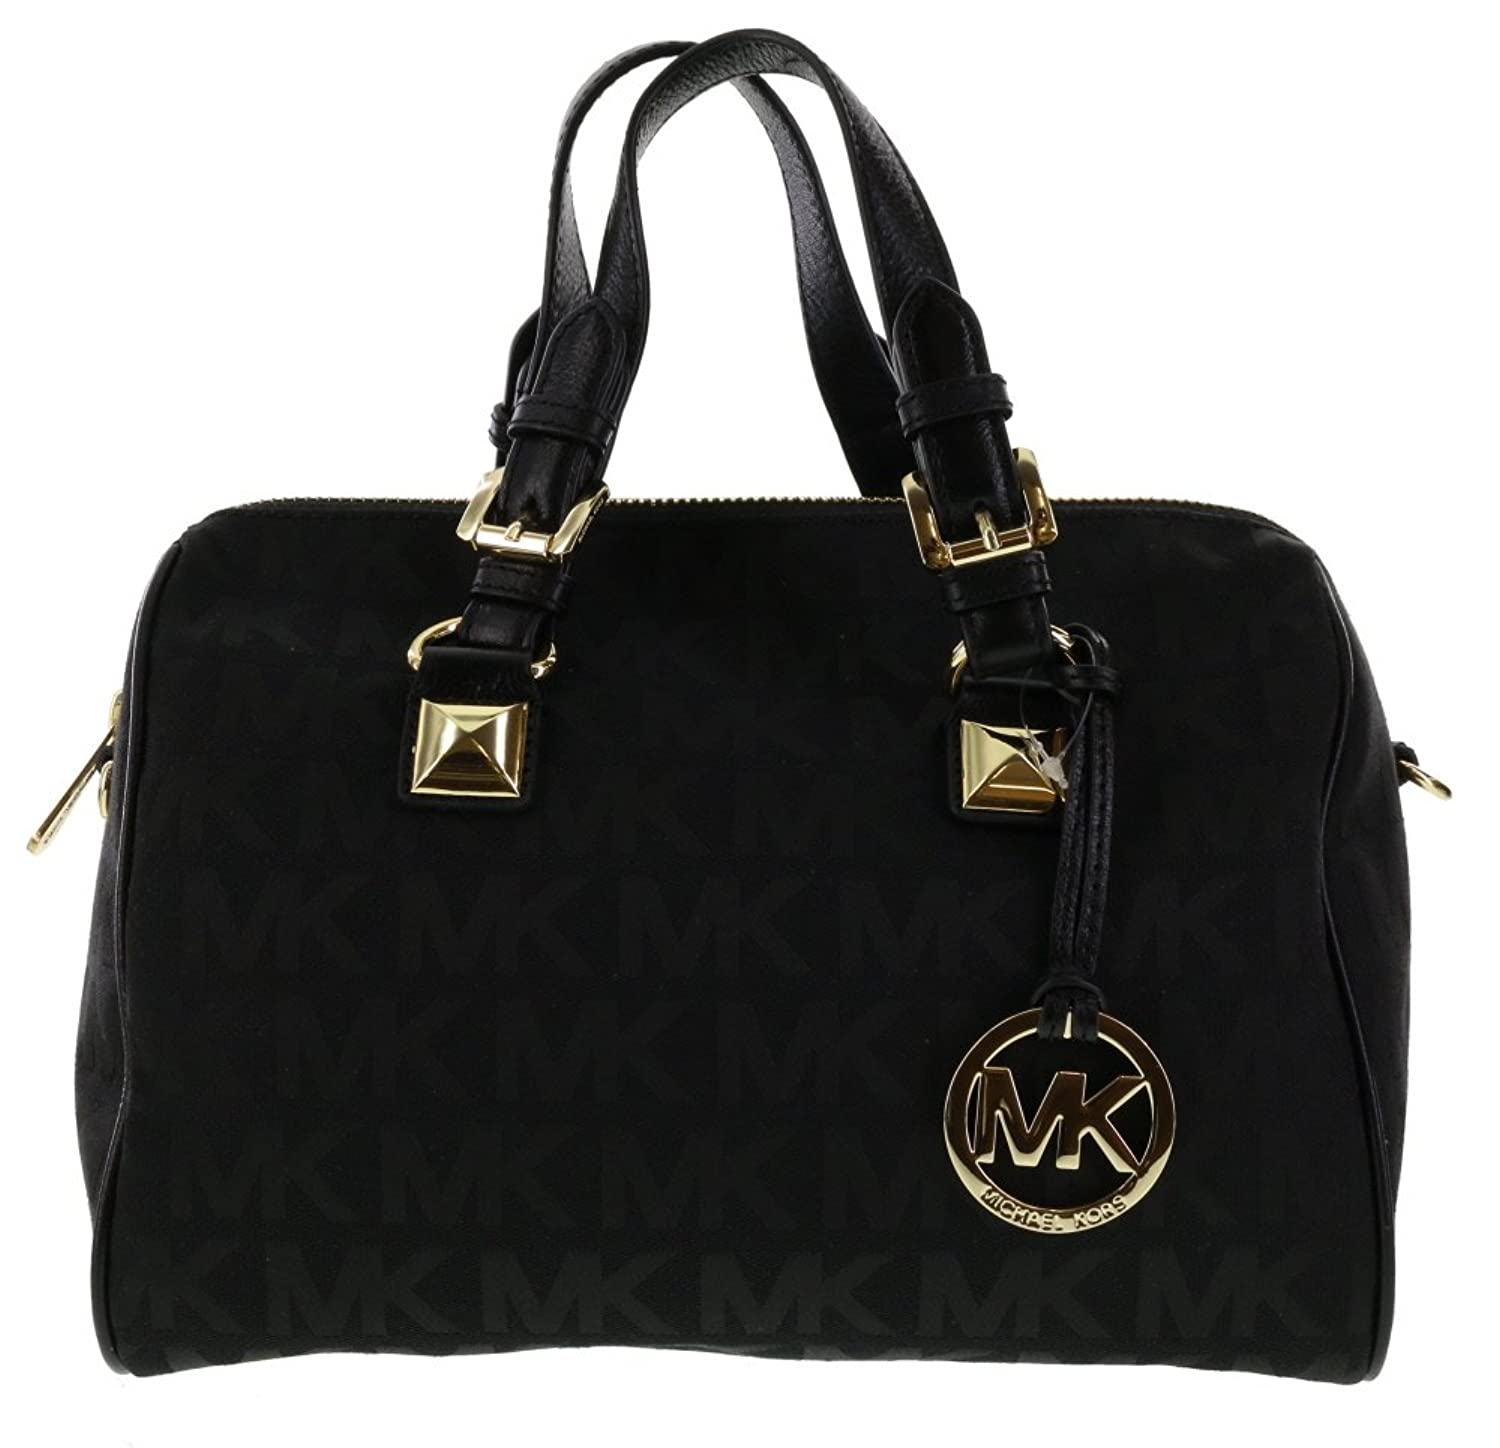 michael kors zip satchel grayson sequin embroidered gelb tasche fake. Black Bedroom Furniture Sets. Home Design Ideas